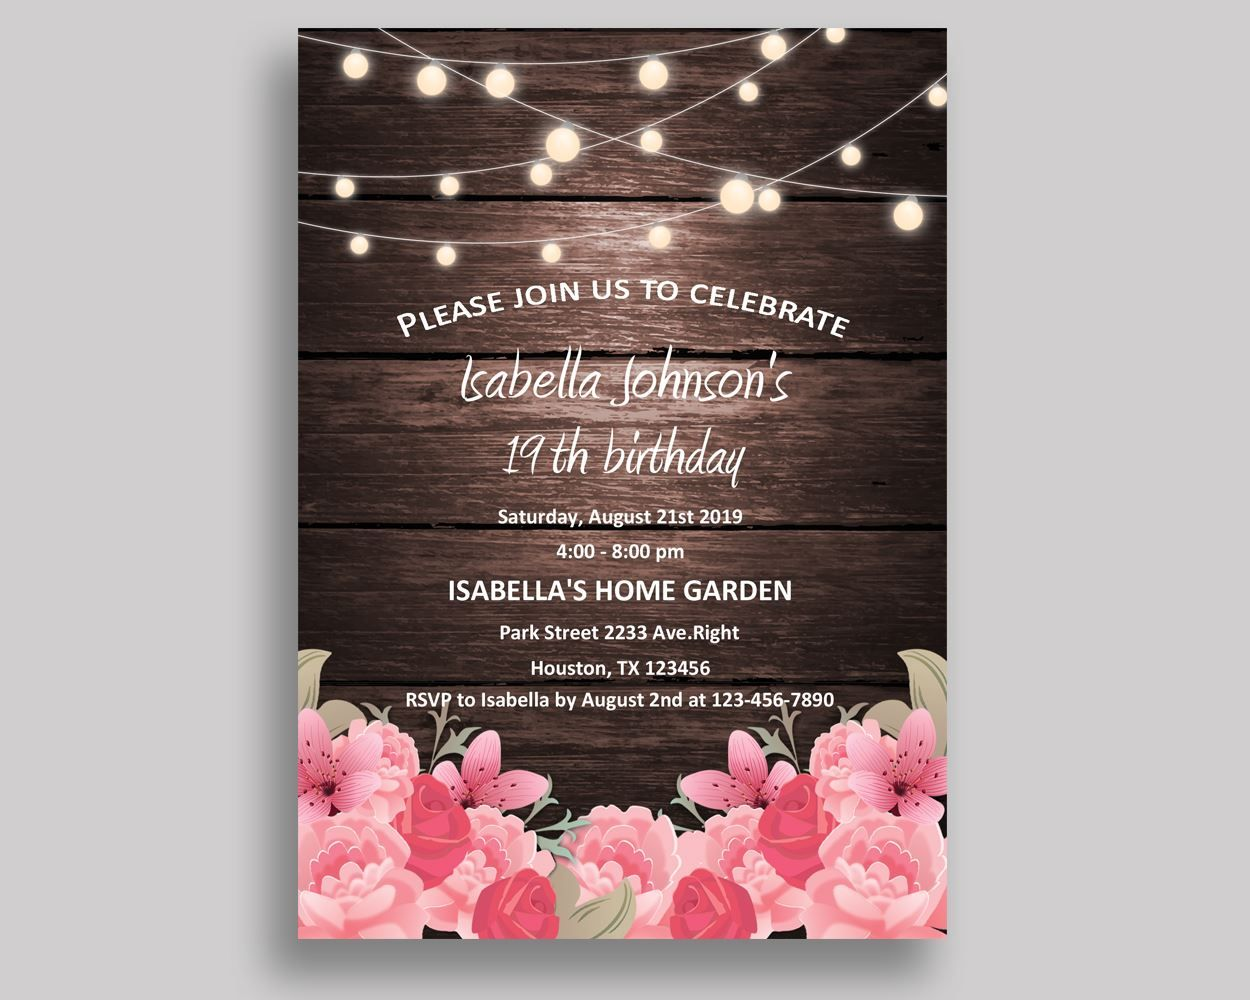 Rustic Birthday Invitation Rustic Birthday Party Invitation Rustic ...